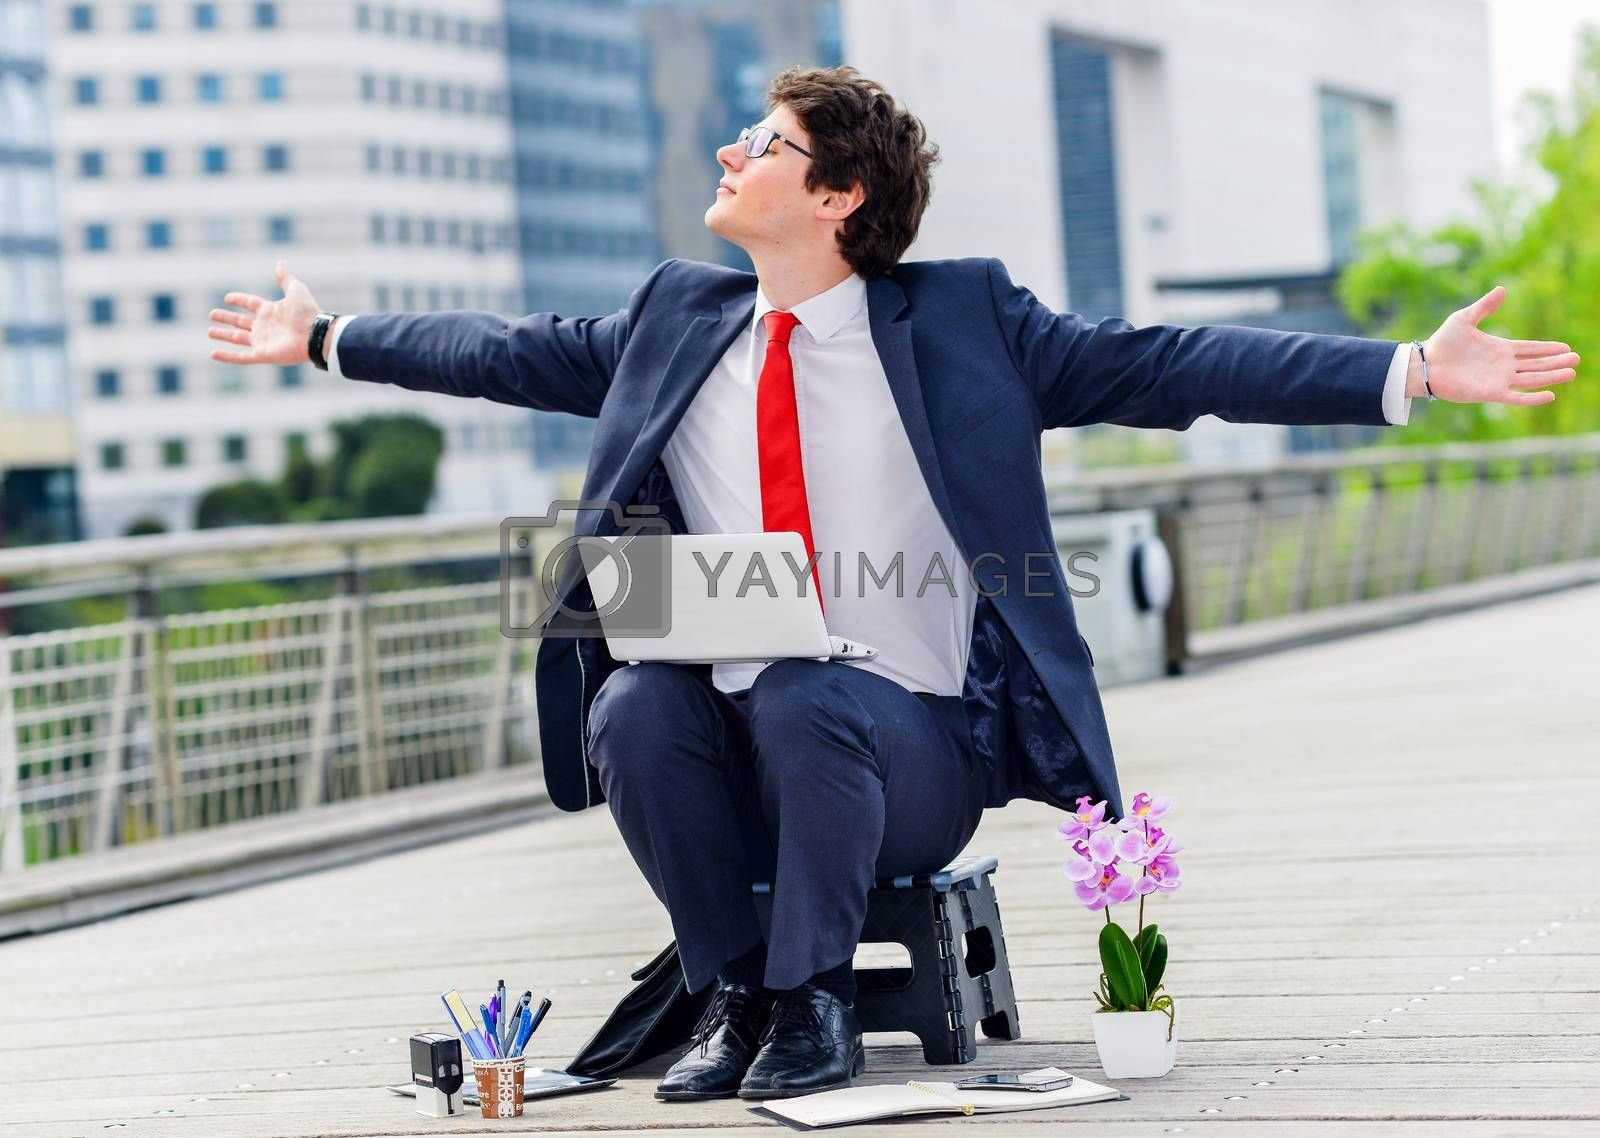 Royalty free image of Junior executive of company free of any constraint by pixinoo